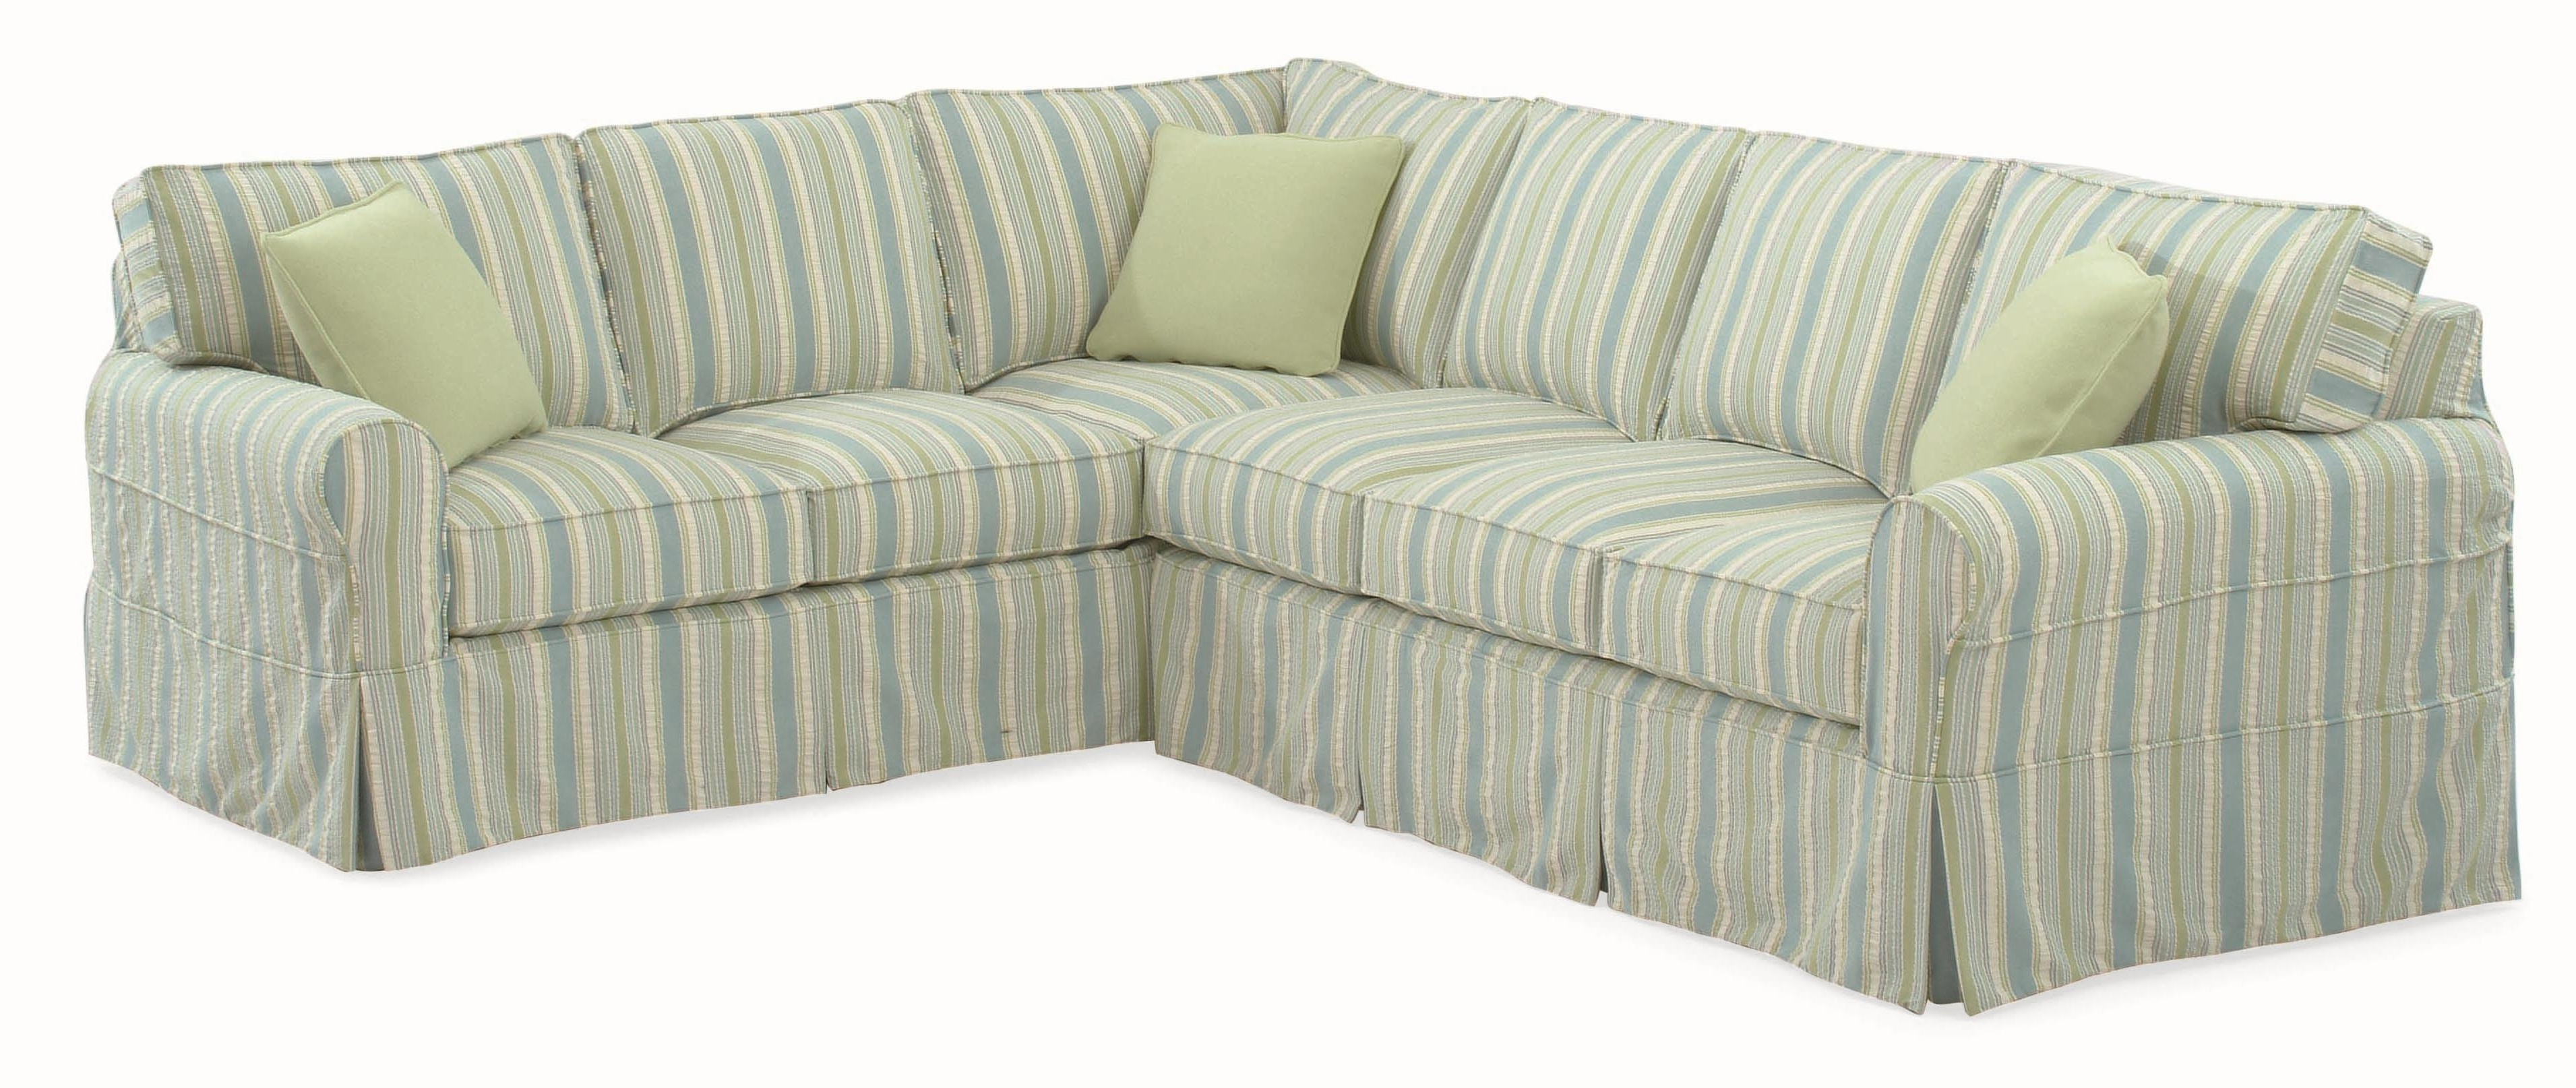 Famous Havertys Sectional Sofas Intended For Braxton Culler 728 Casual Sectional Sofa With Rolled Arms And (View 2 of 15)